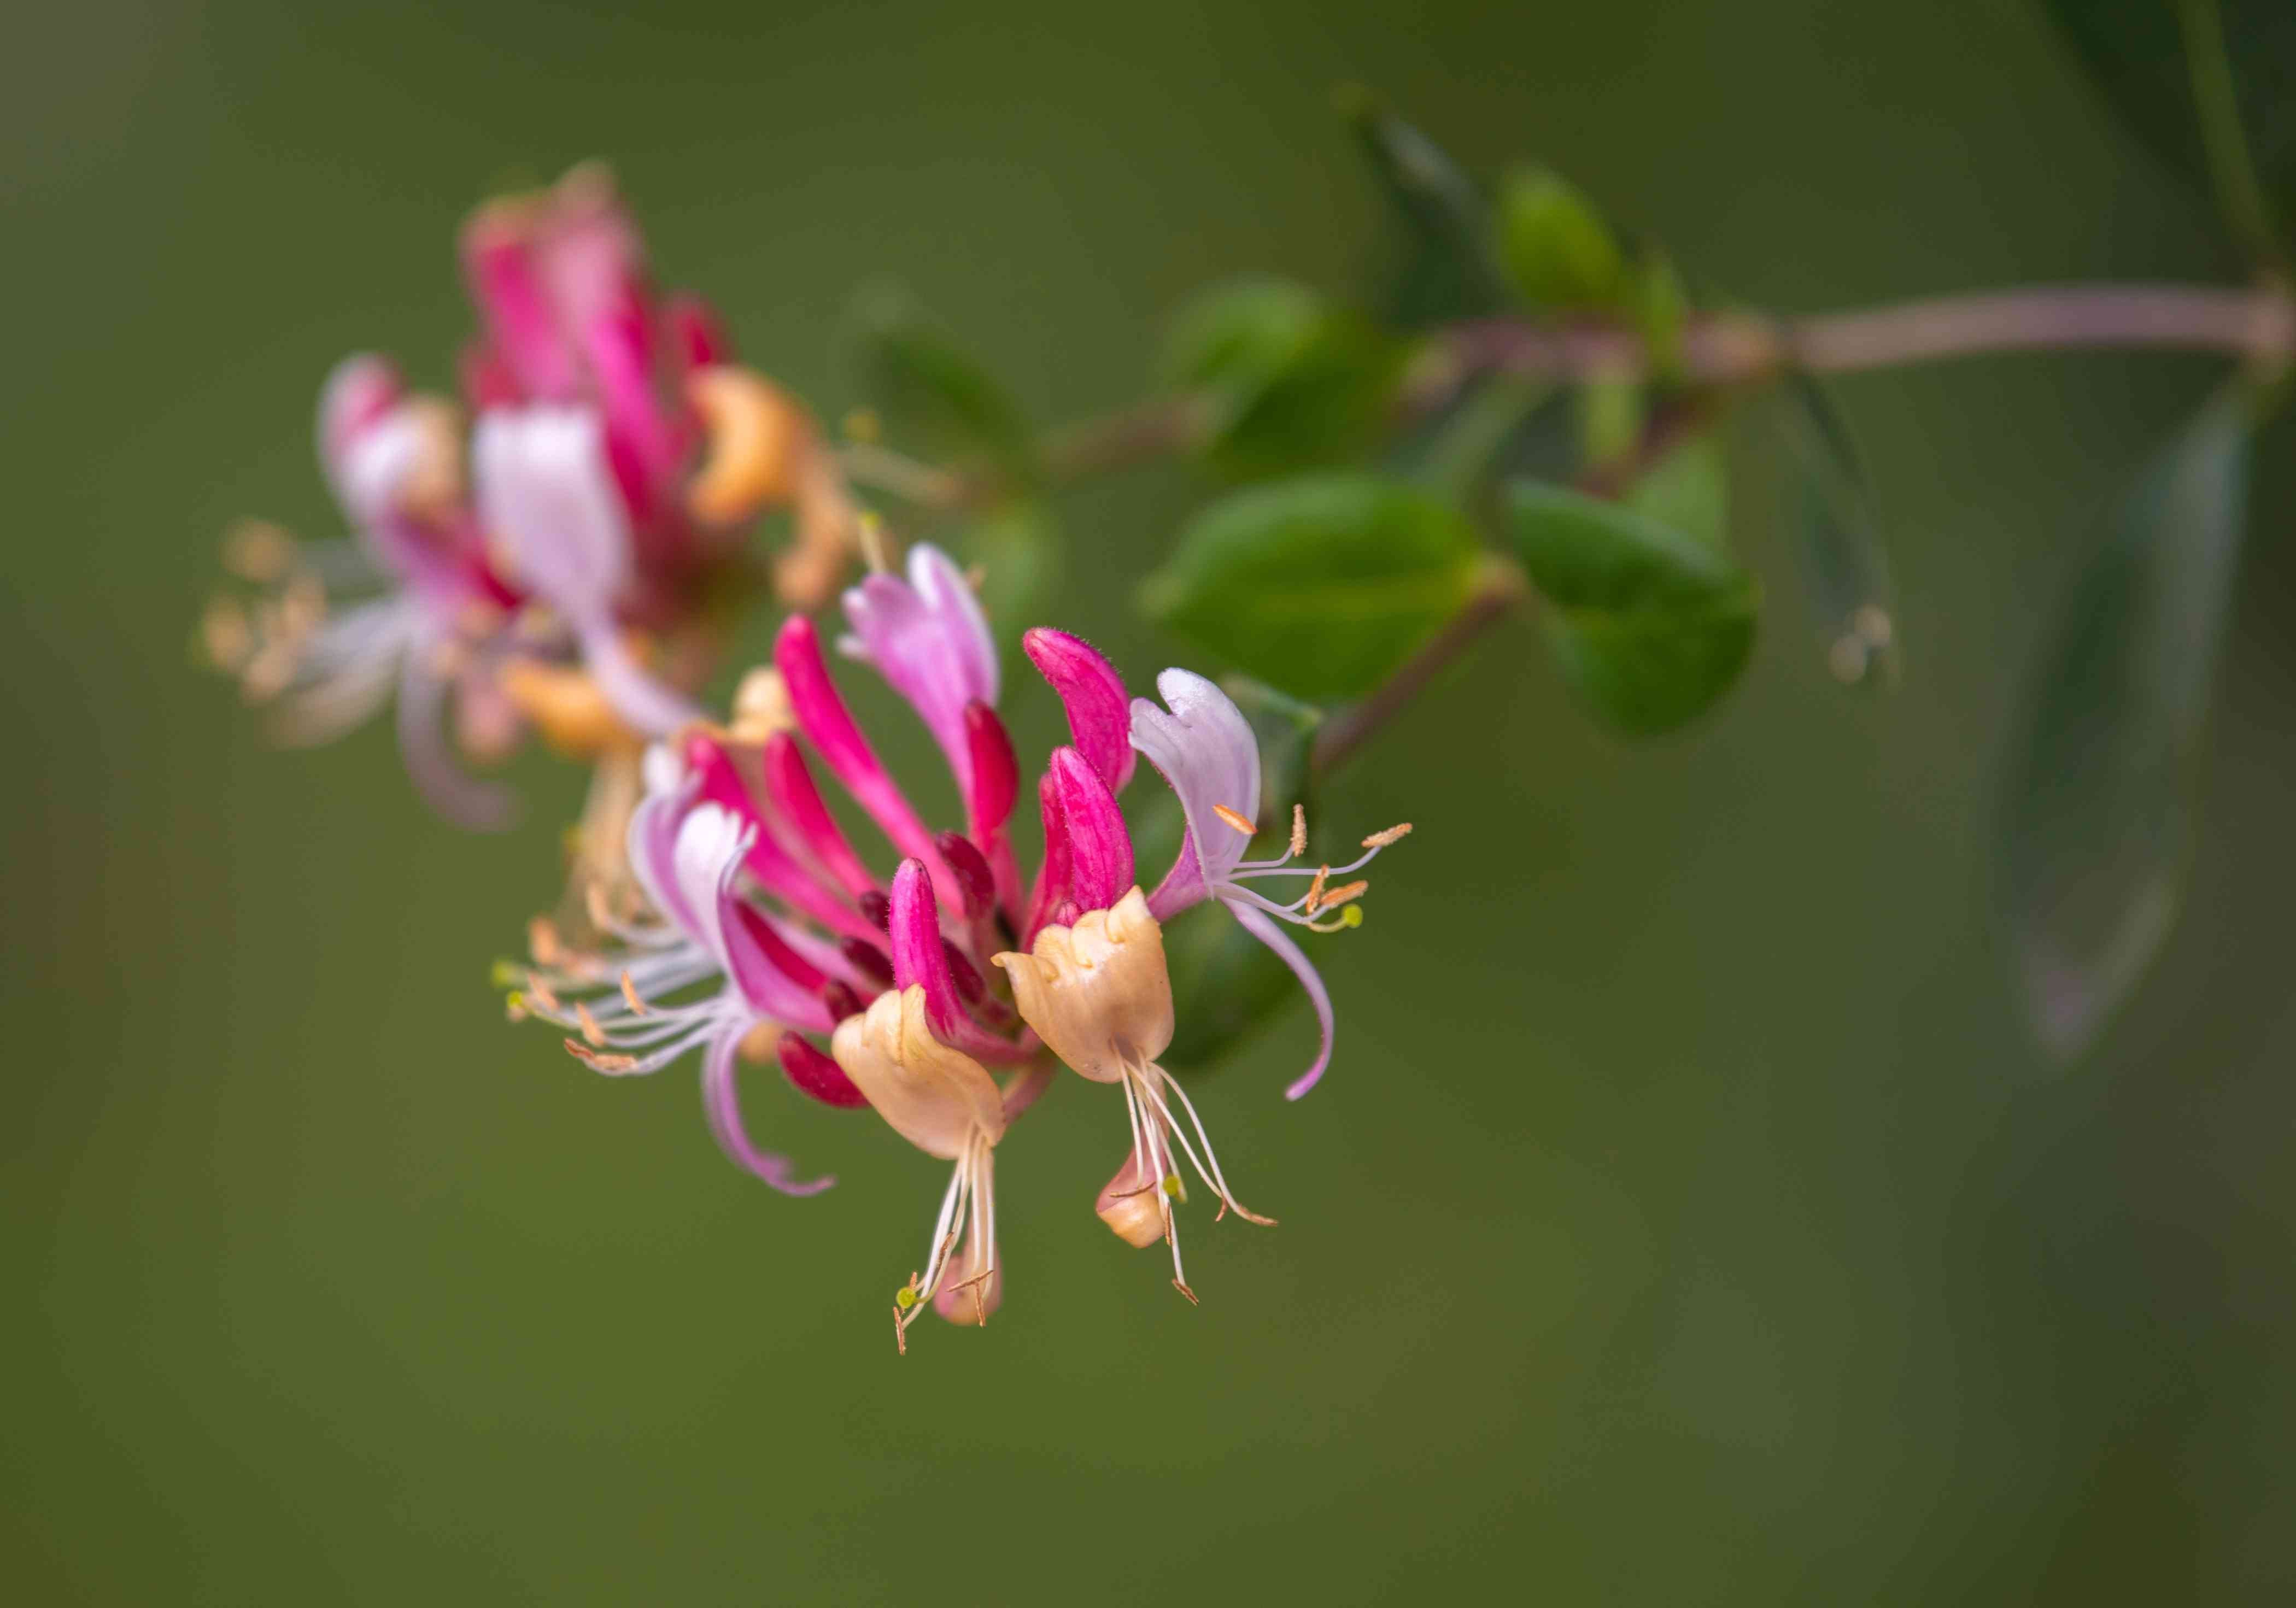 Common honeysuckle plant with tubular pink and yellow flowers closeup